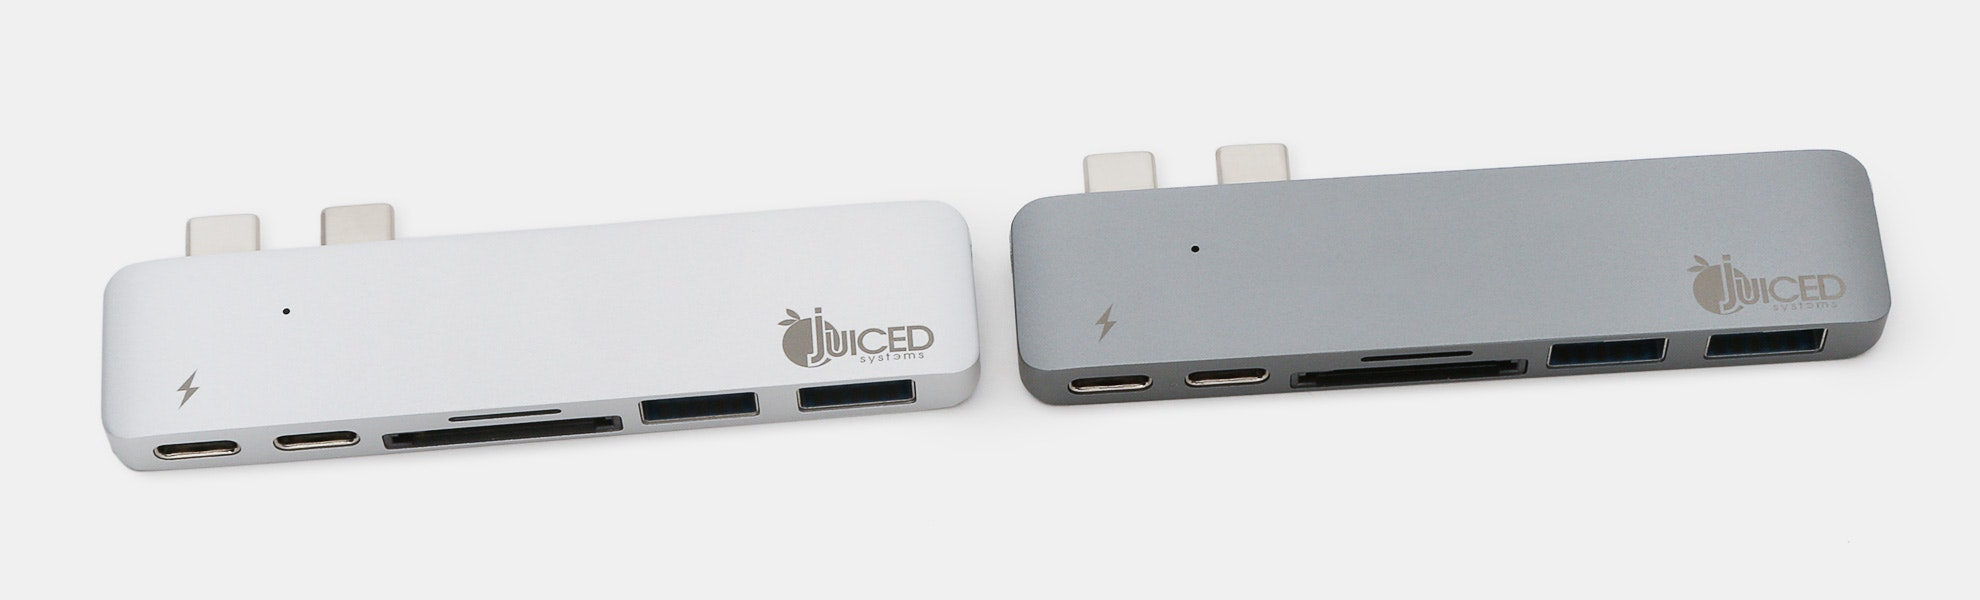 Juiced Systems MacBook USB-C/USB Adapters